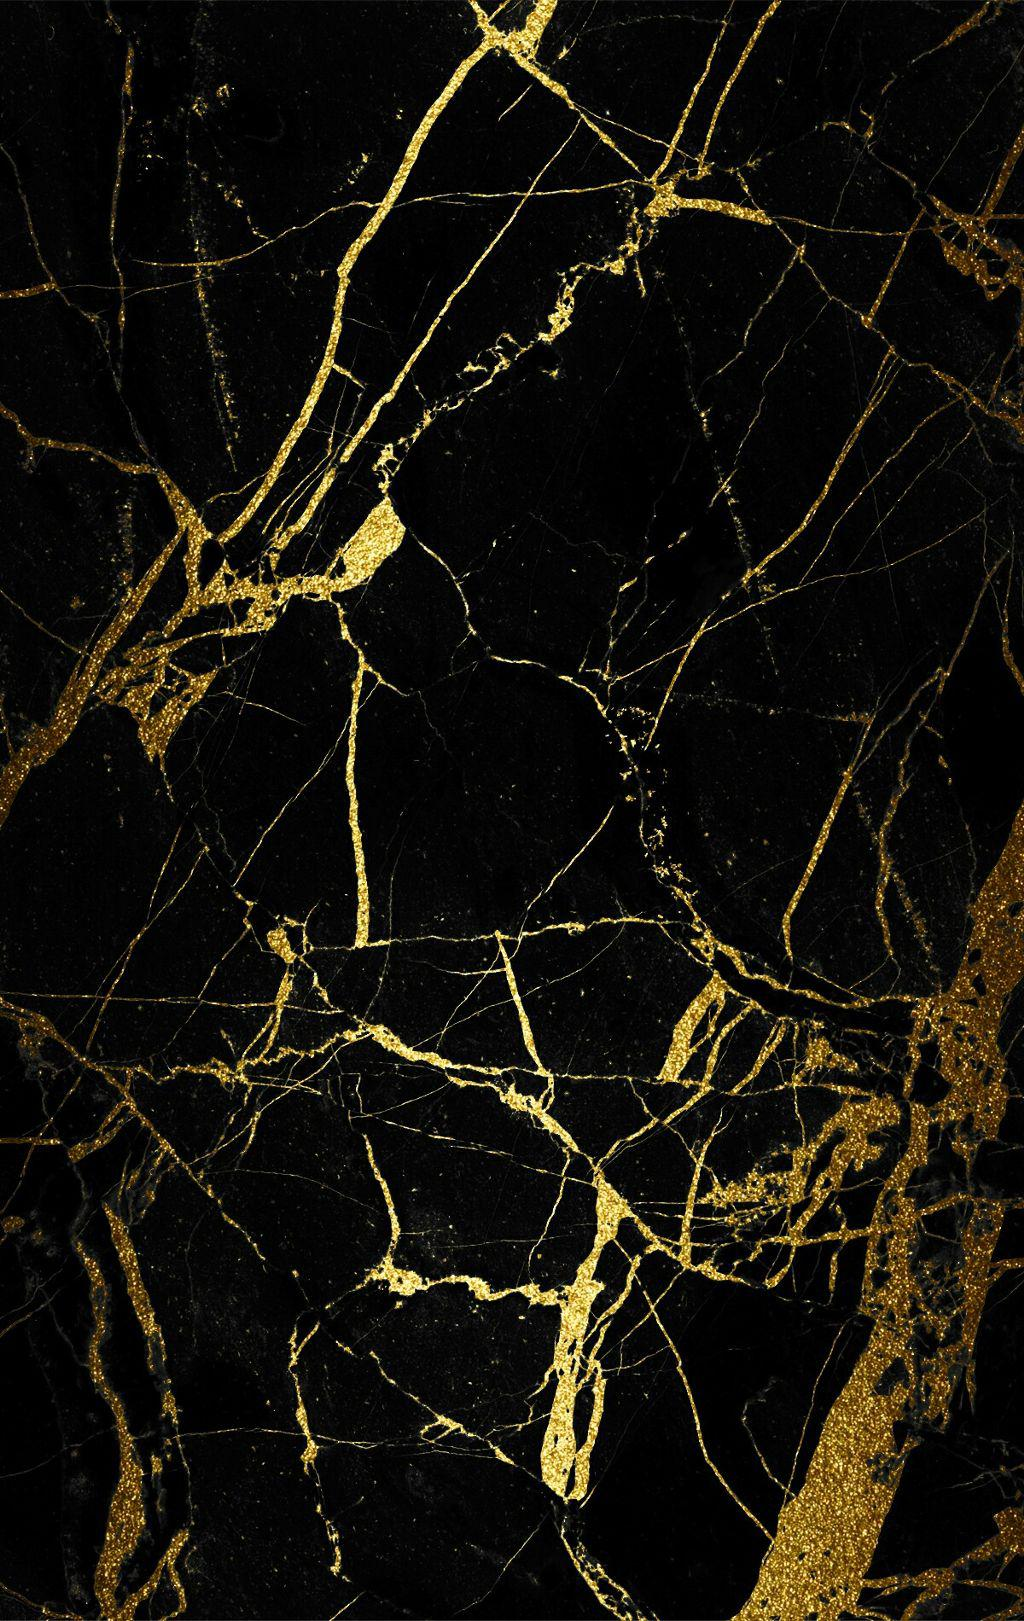 Marble black (20 Wallpapers) - Adorable Wallpapers